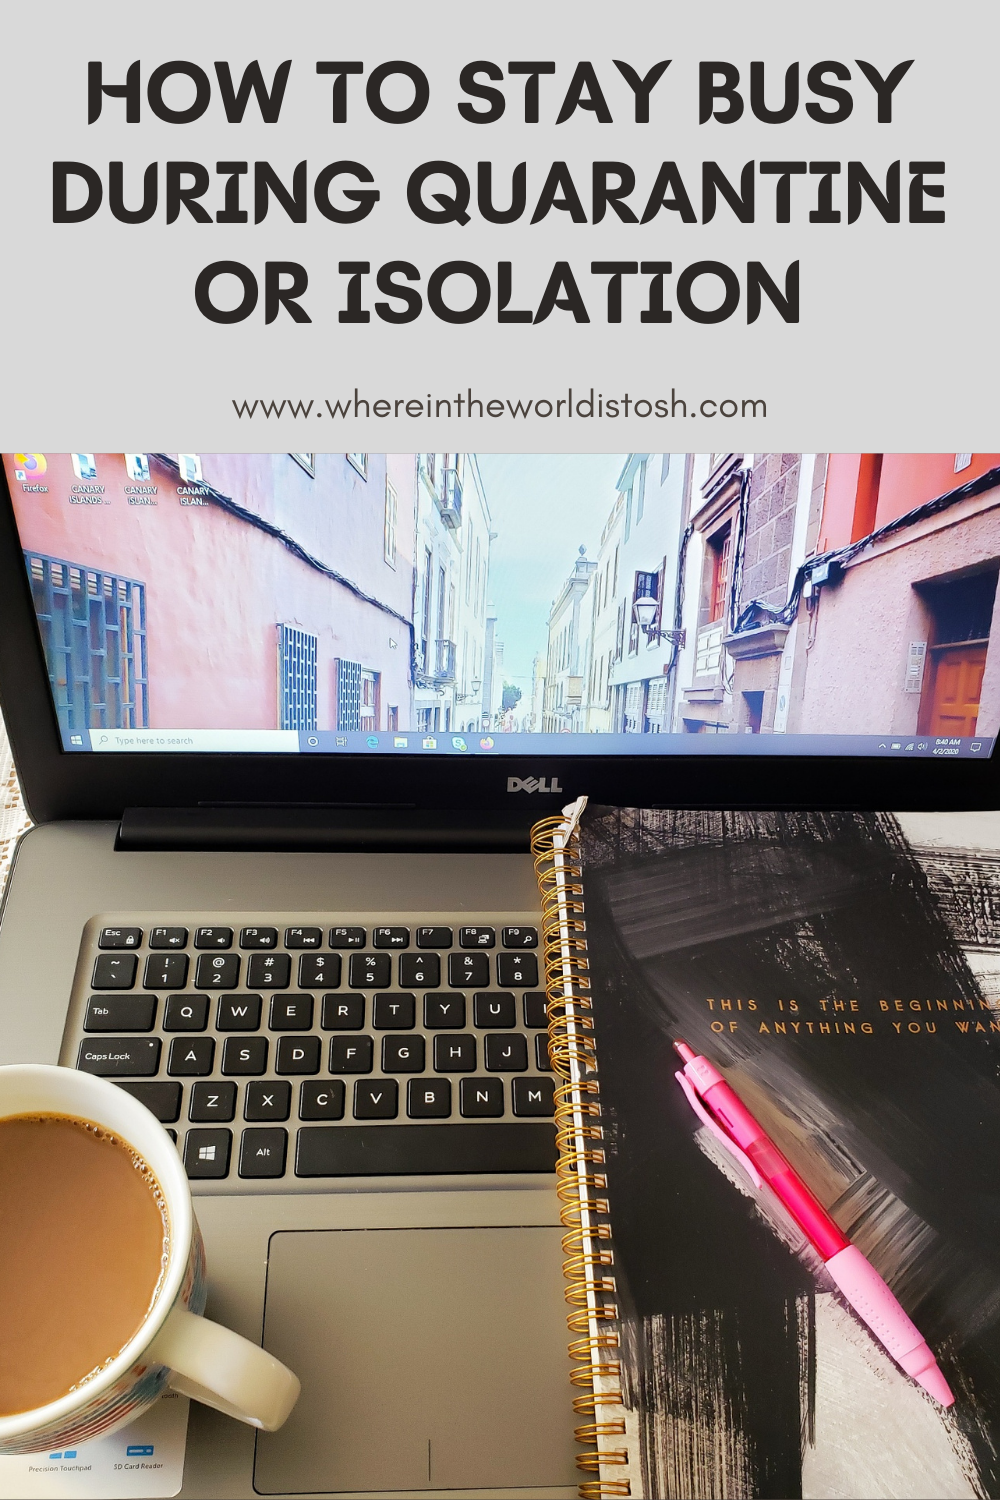 How To Stay Busy During Quarantine Or Isolation